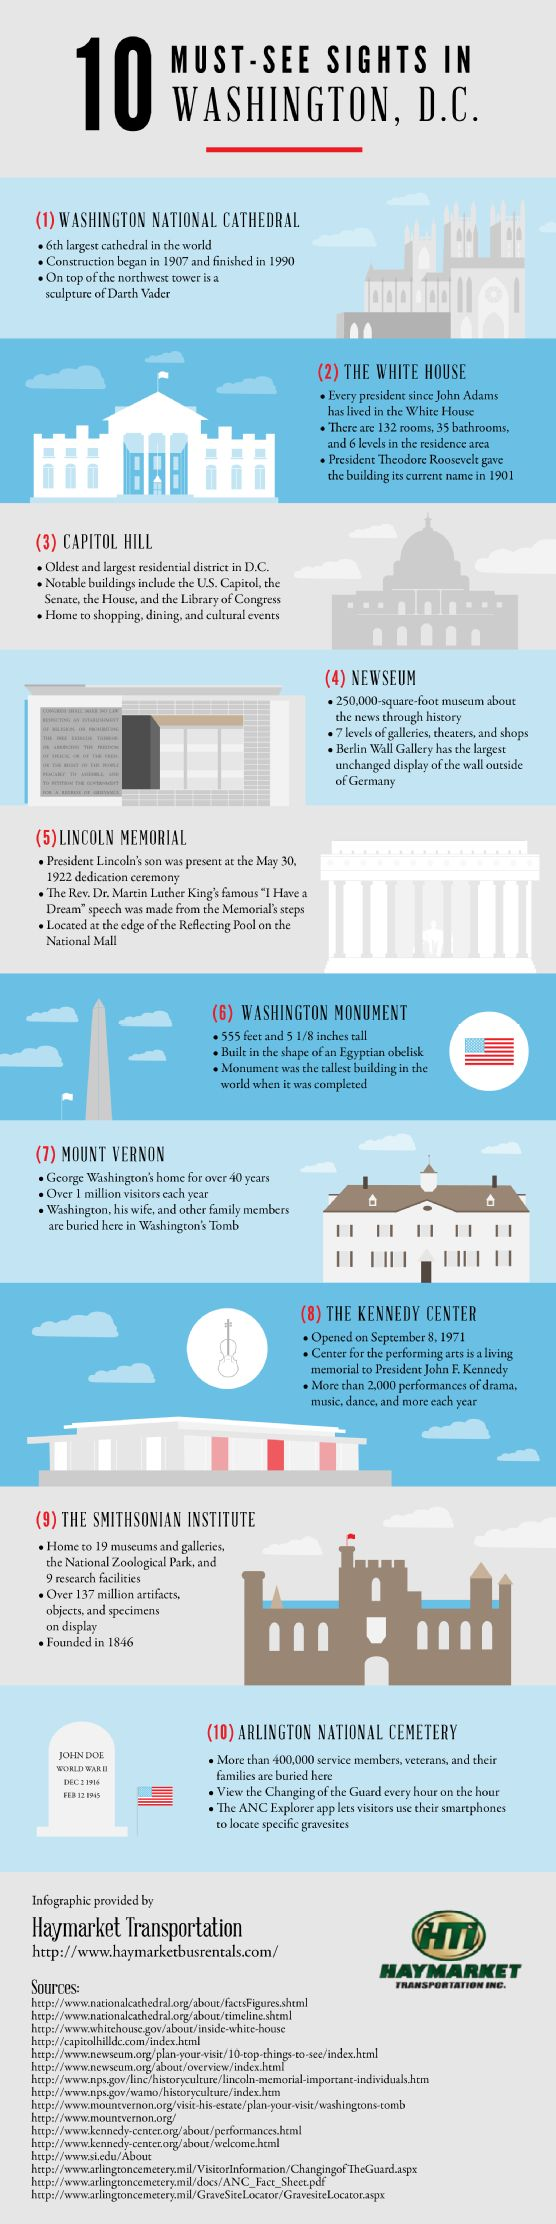 10 Must-See Sights in Washington, D.C. #Infographic #Travel